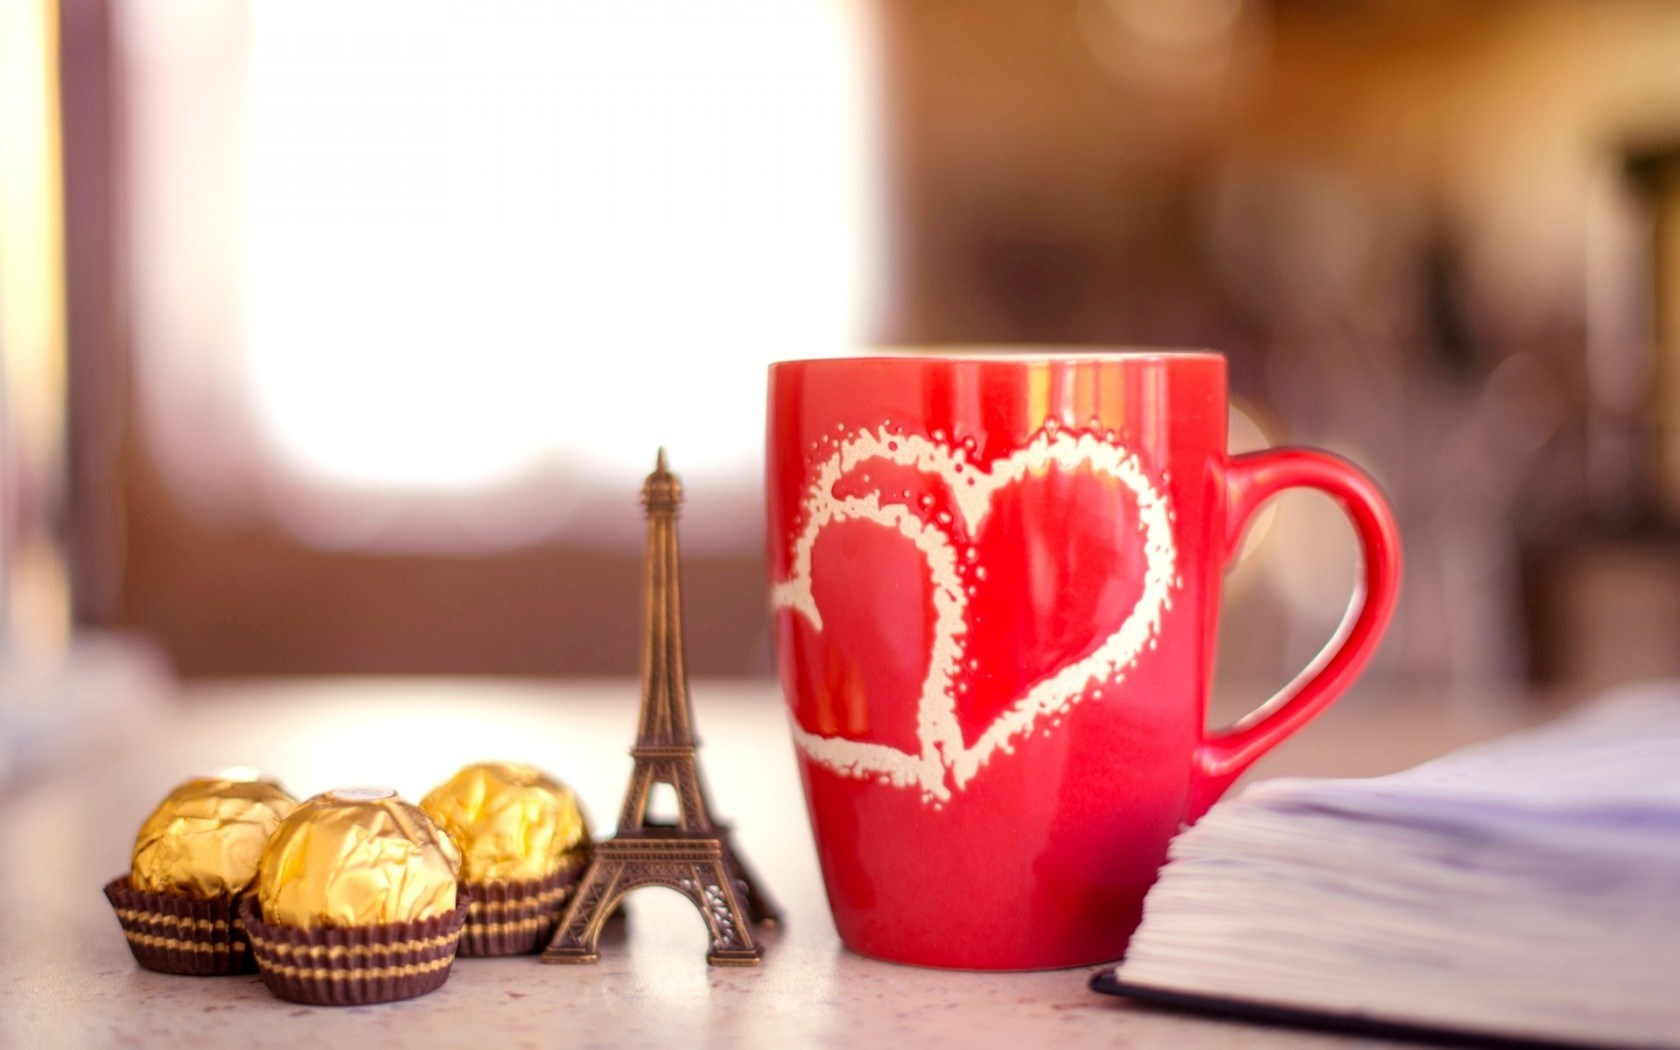 Mood Mug Red Hearts Chocolate Candy Notebook Eiffel Tower Love